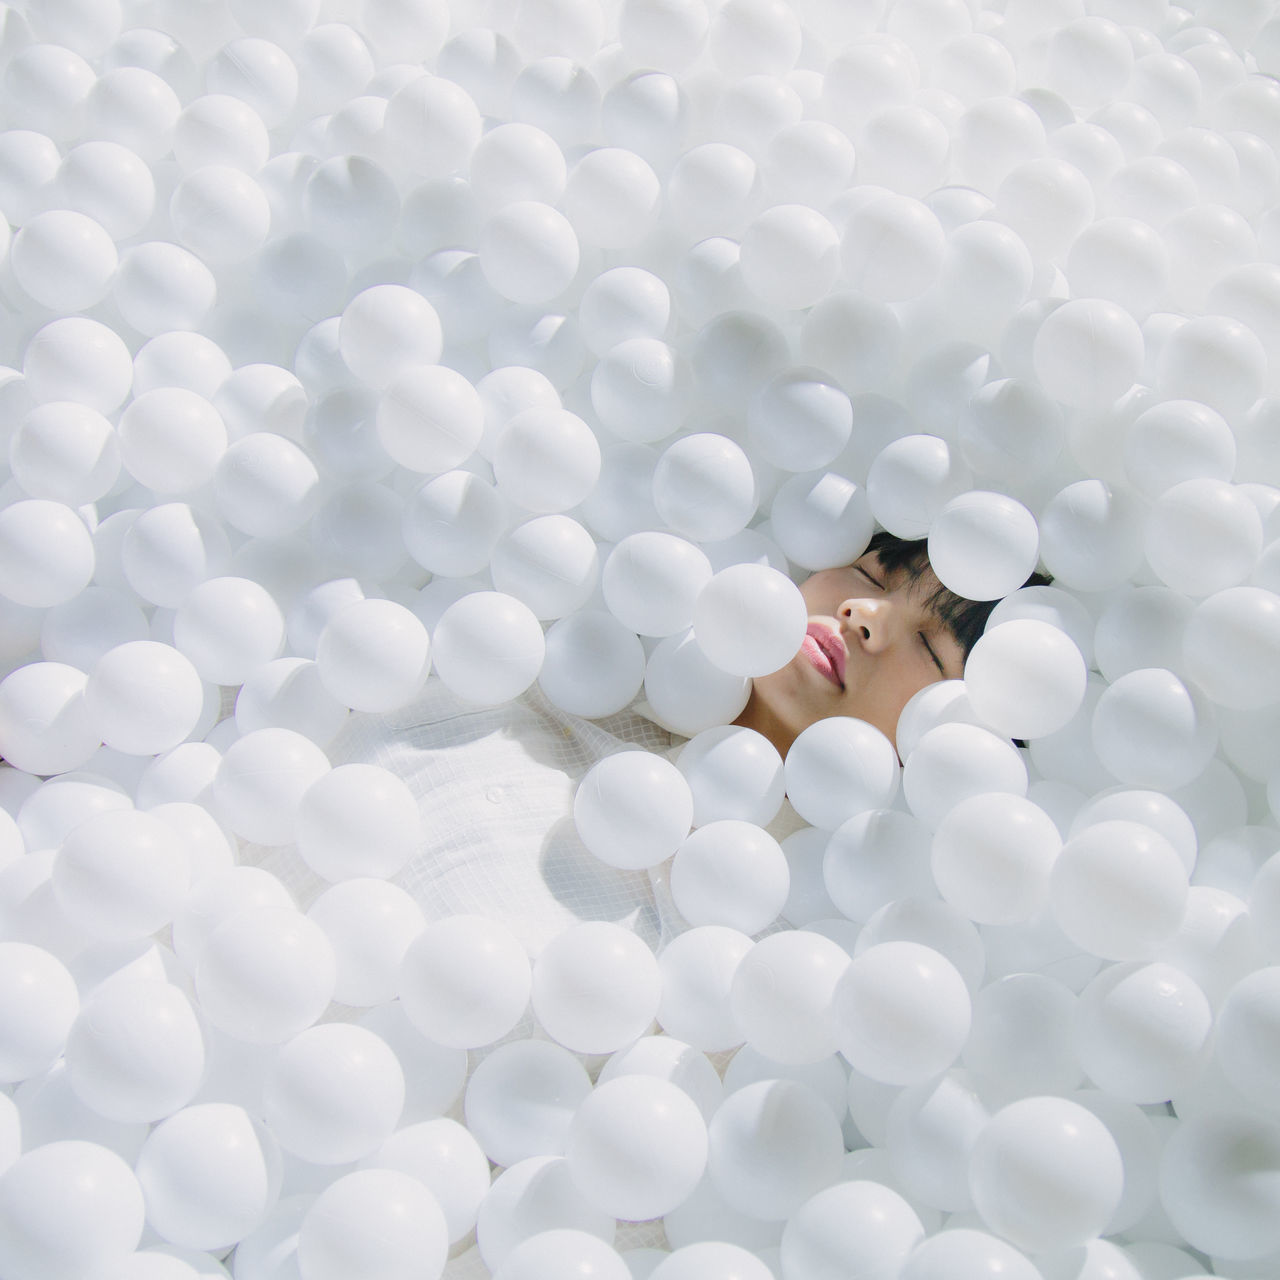 High angle view of woman sleeping amidst balls